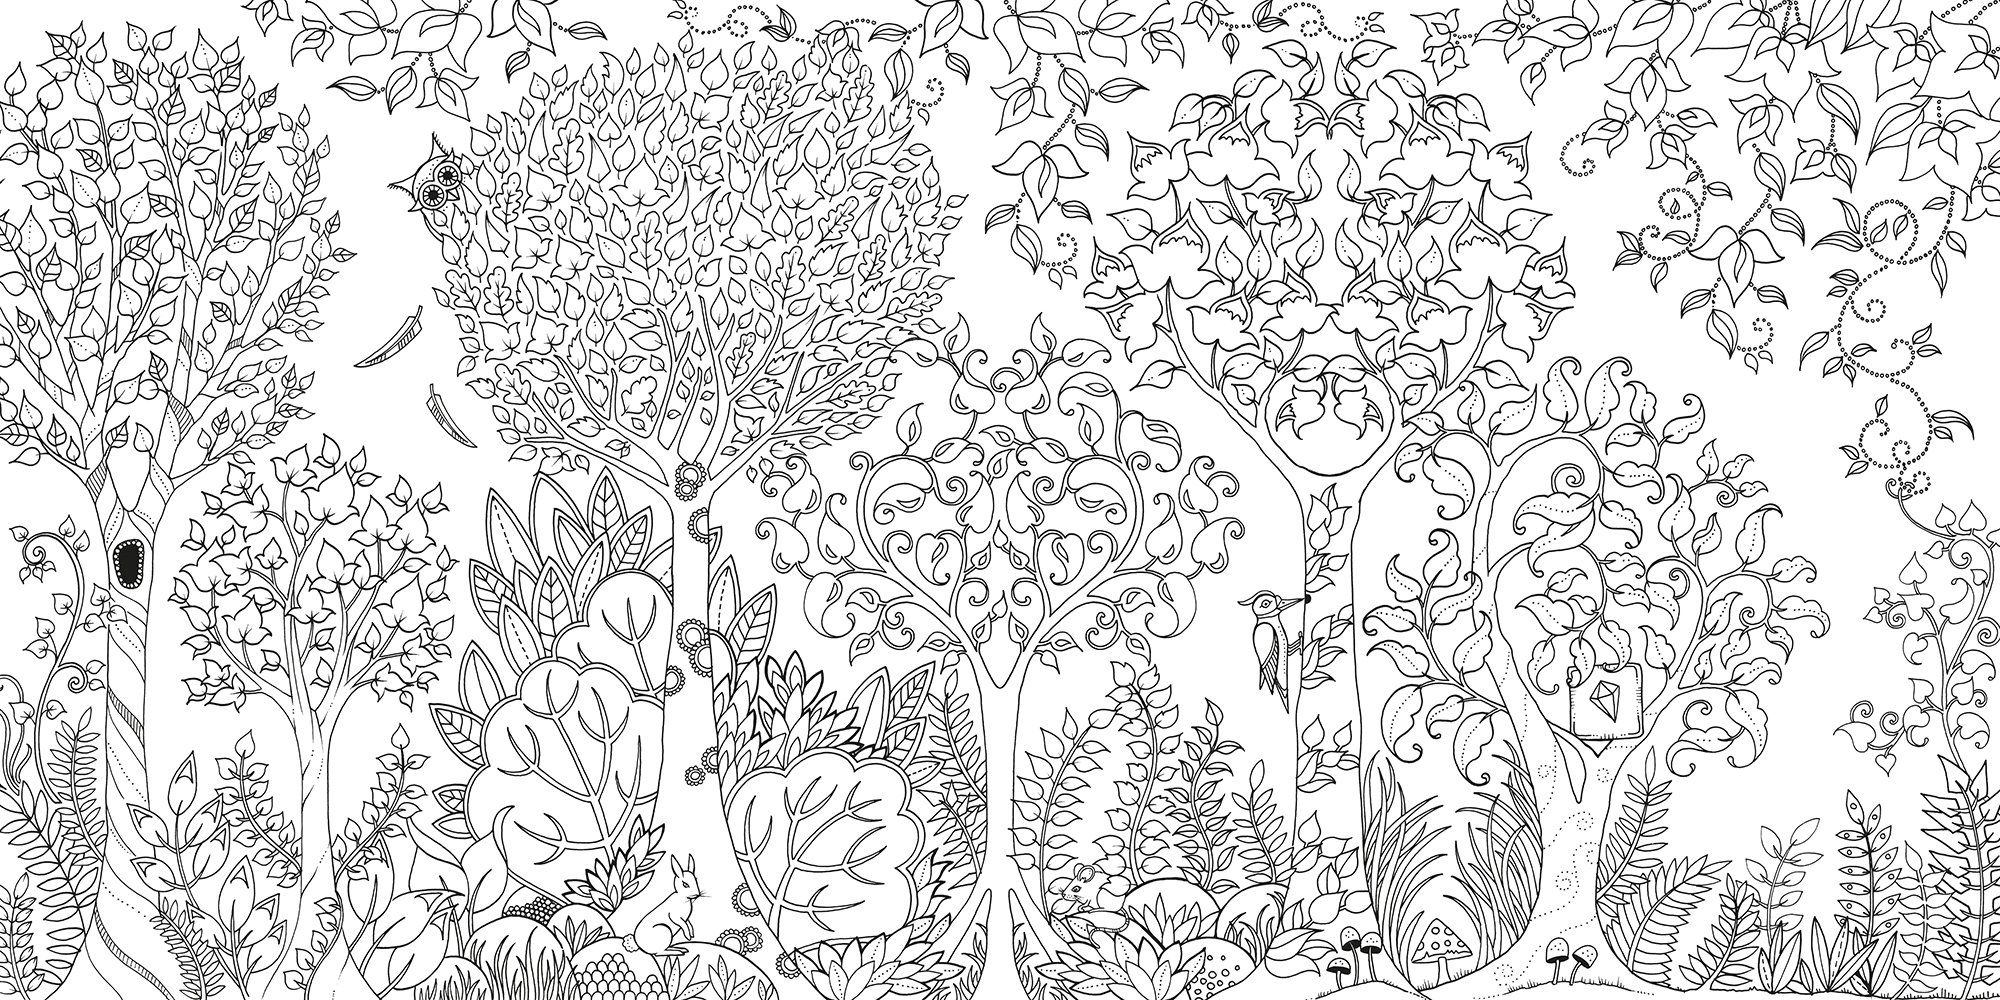 Johanna Basford Coloring Pages  Collection 19k - Save it to your computer